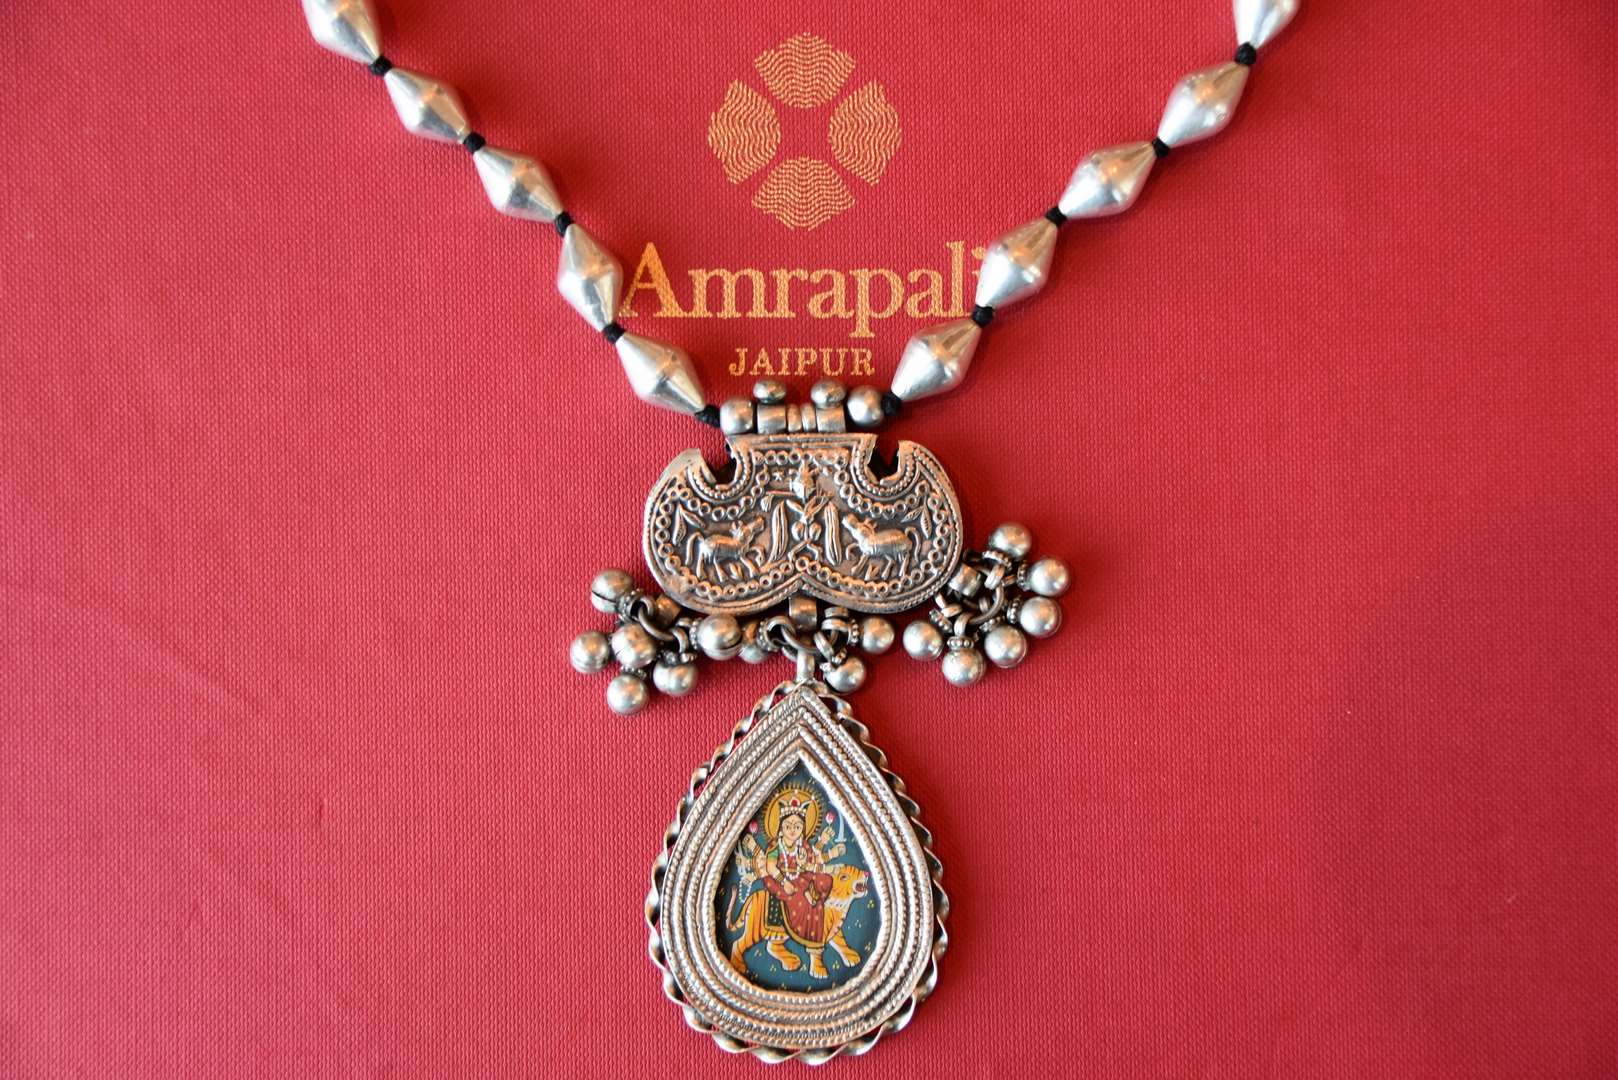 Buy Amrapali silver dholki thread necklace online in USA with Goddess Durga painting pendant. Add spark to your ethnic attires with beautiful Indian silver gold plated jewelry, wedding jewellery, silver necklaces from Pure Elegance Indian fashion store in USA.-flatlay